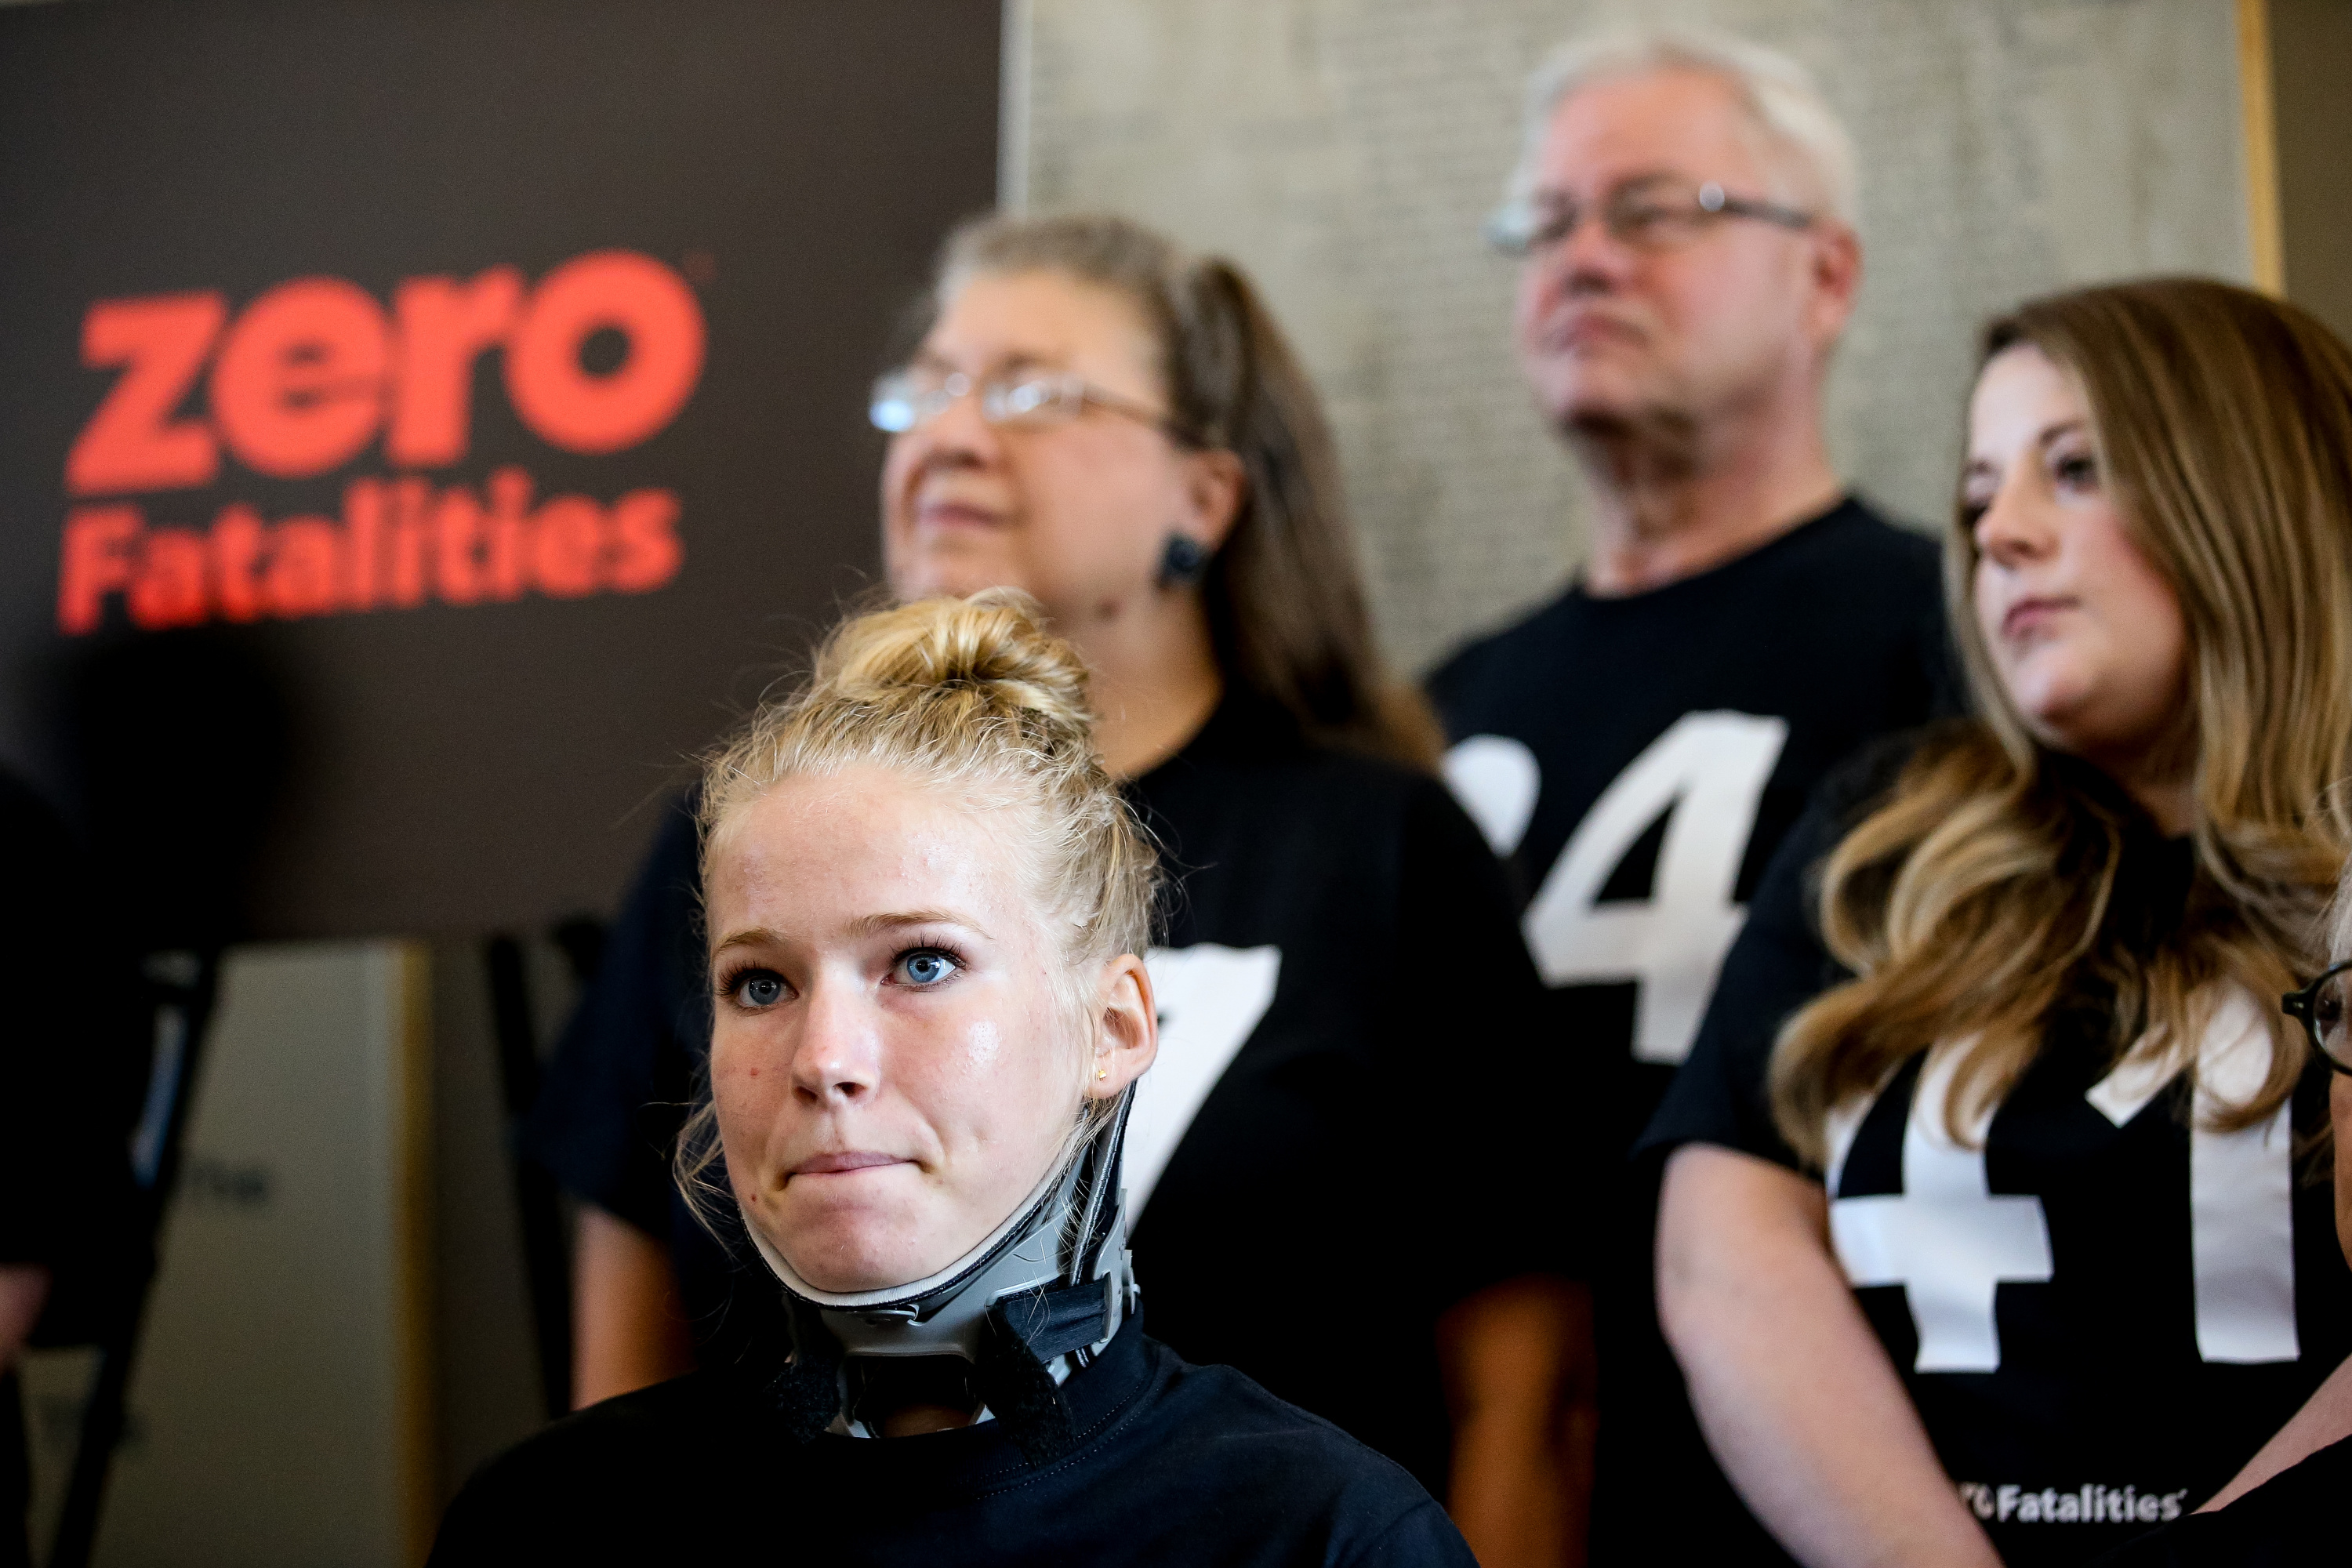 Meghan Hunter, 18, of Provo, left, listens during a press conference reporting the sharpest-ever decrease in the number of road fatalities during the summer at Intermountain Medical Center in Murray on Thursday, Sept. 5, 2019. Hunter and her brother were involved in a July 4 rollover accident that fractured several of her vertebrae, but she credited the facts that they weren't speeding and were wearing seat belts with saving their lives. At the press conference, people in numbered shirts represented the 41 fewer road fatalities Utah experienced during the period between Memorial Day and Labor Day compared to 2018.